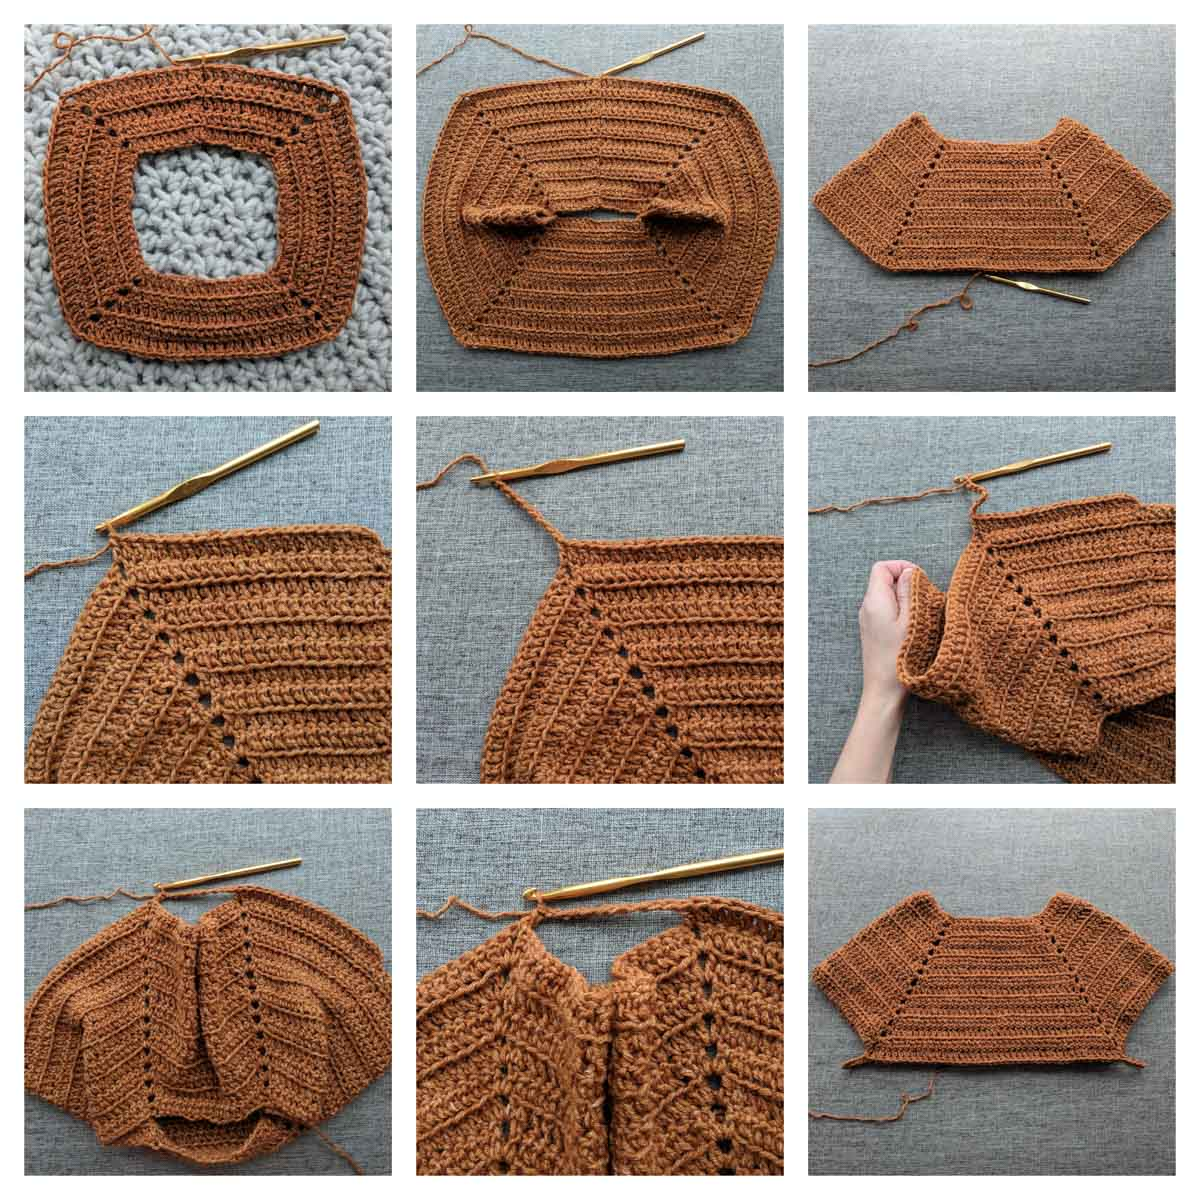 Detailed photo tutorial for how to crochet a seamless sweater.